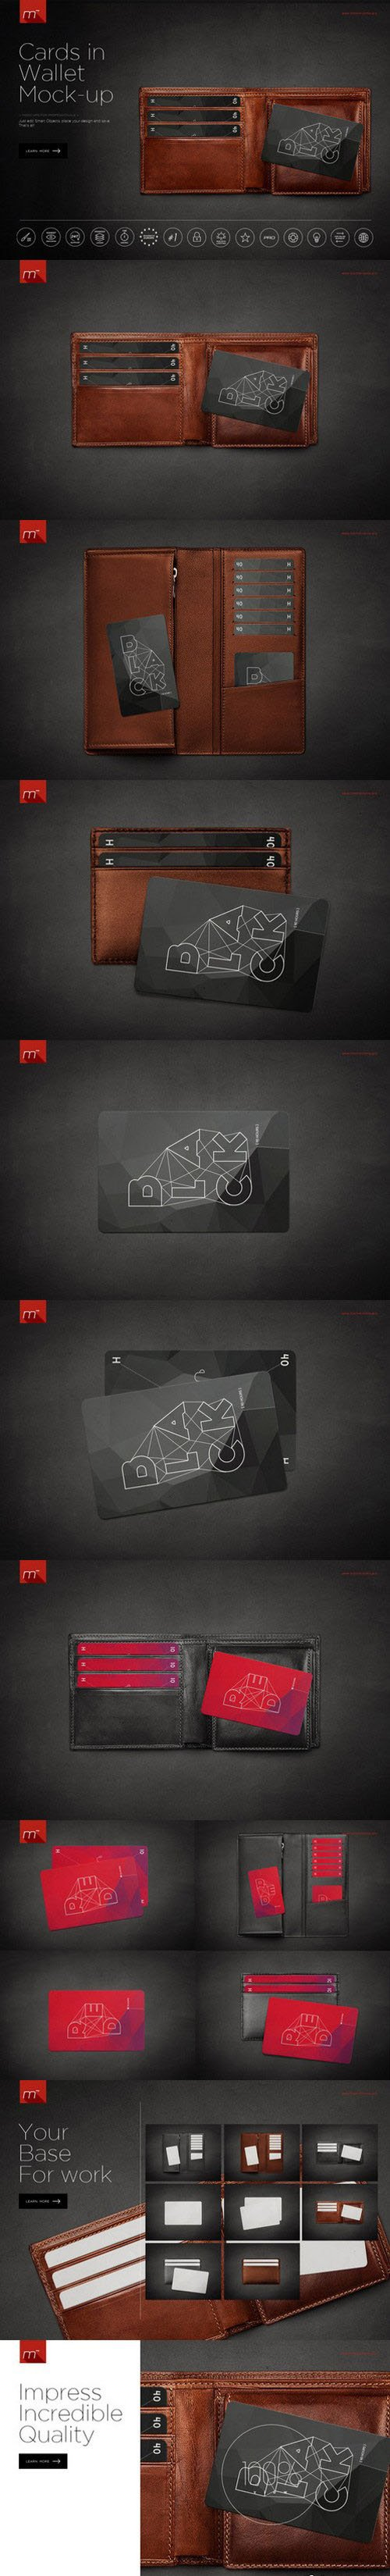 Cards in Wallet Mock-up - Creativemarket 523029